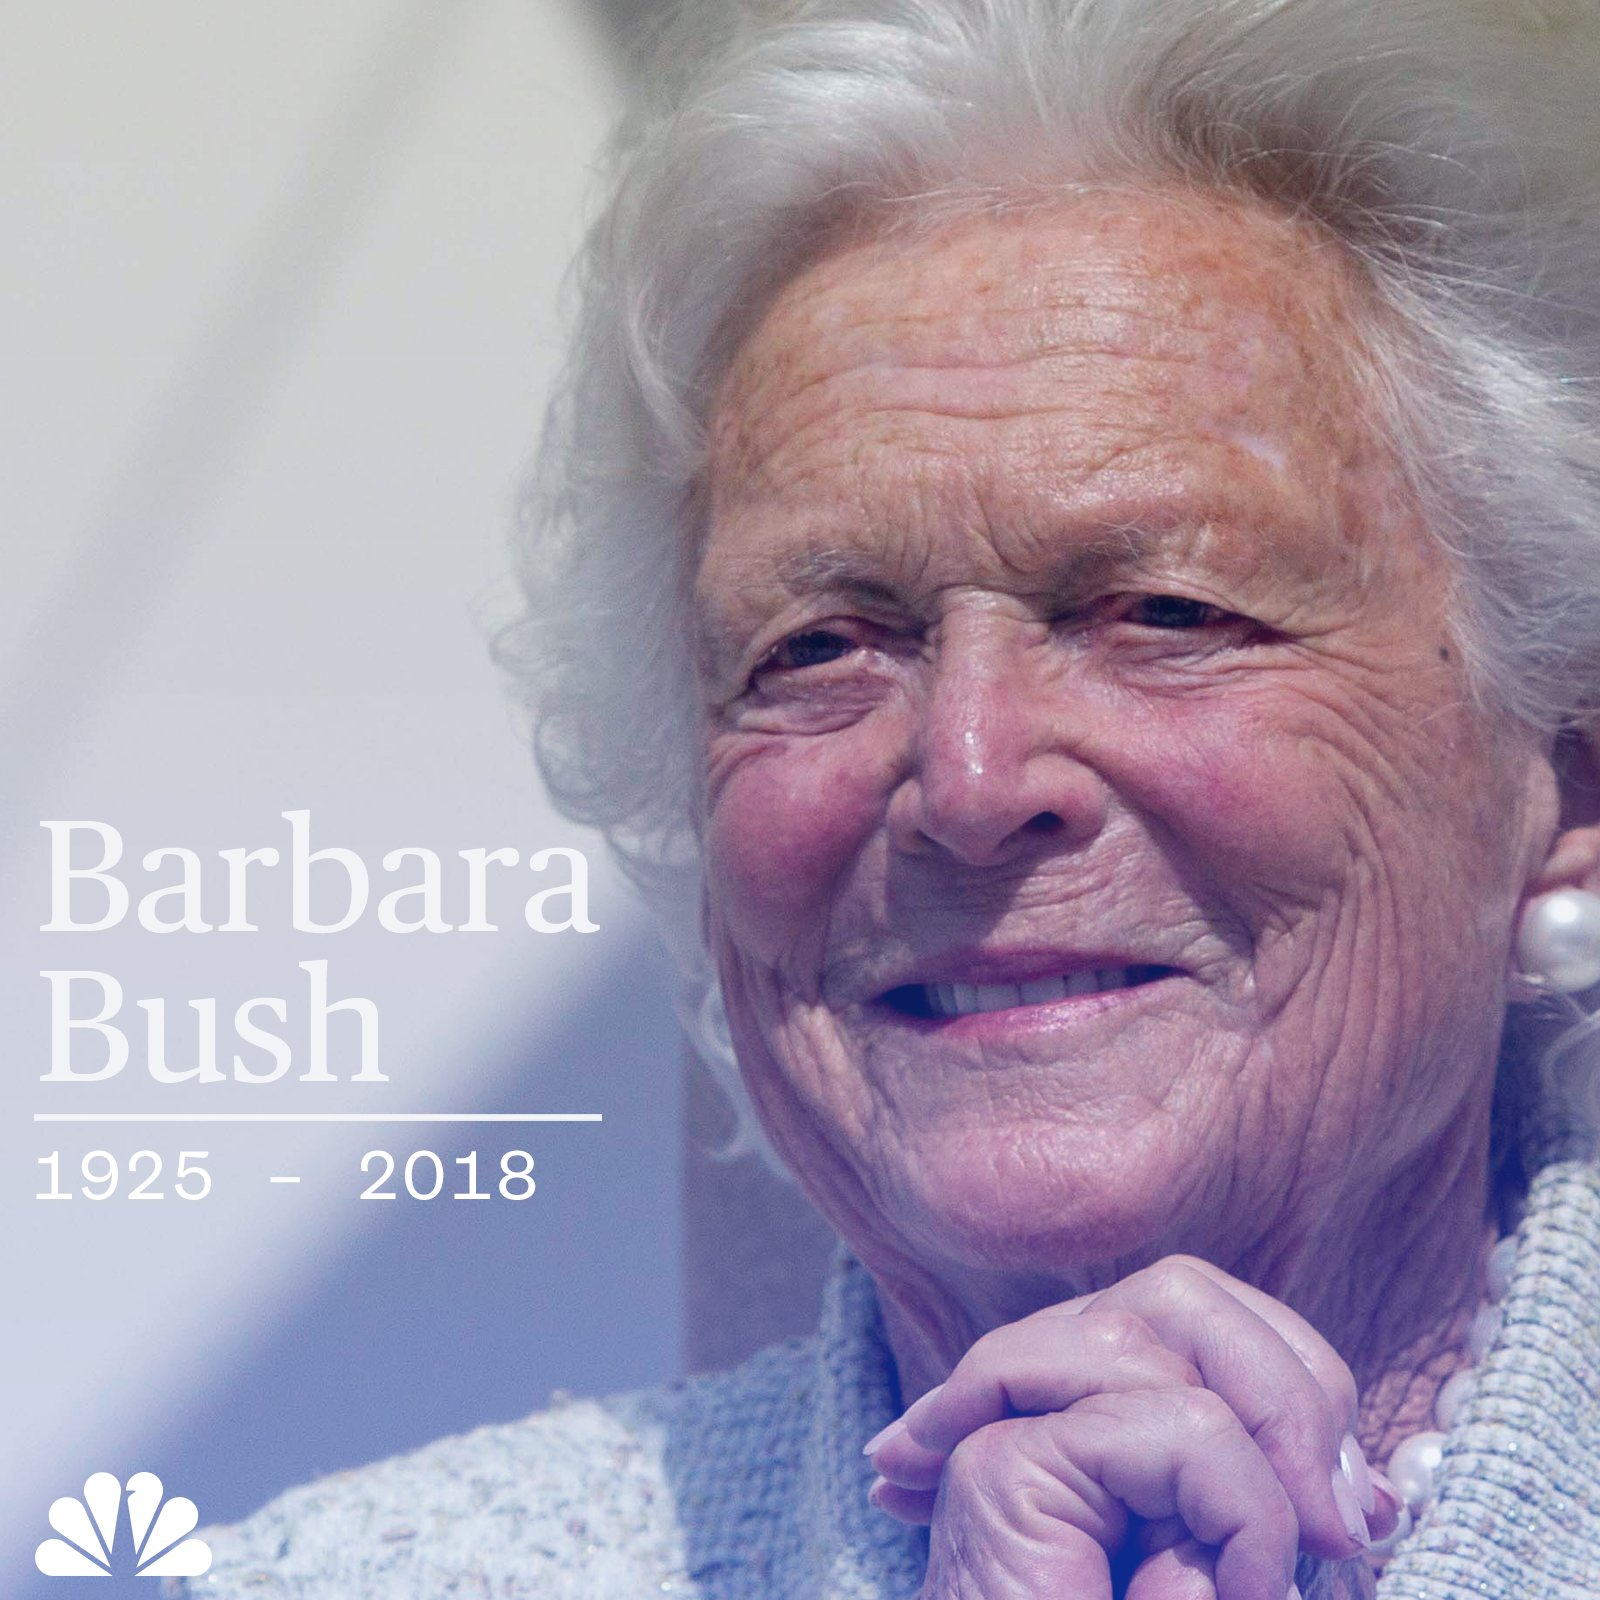 BREAKING: Former First Lady Barbara Bush has passed away at 92, according to a Bush family spokesperson. https://t.co/UveetFuz72